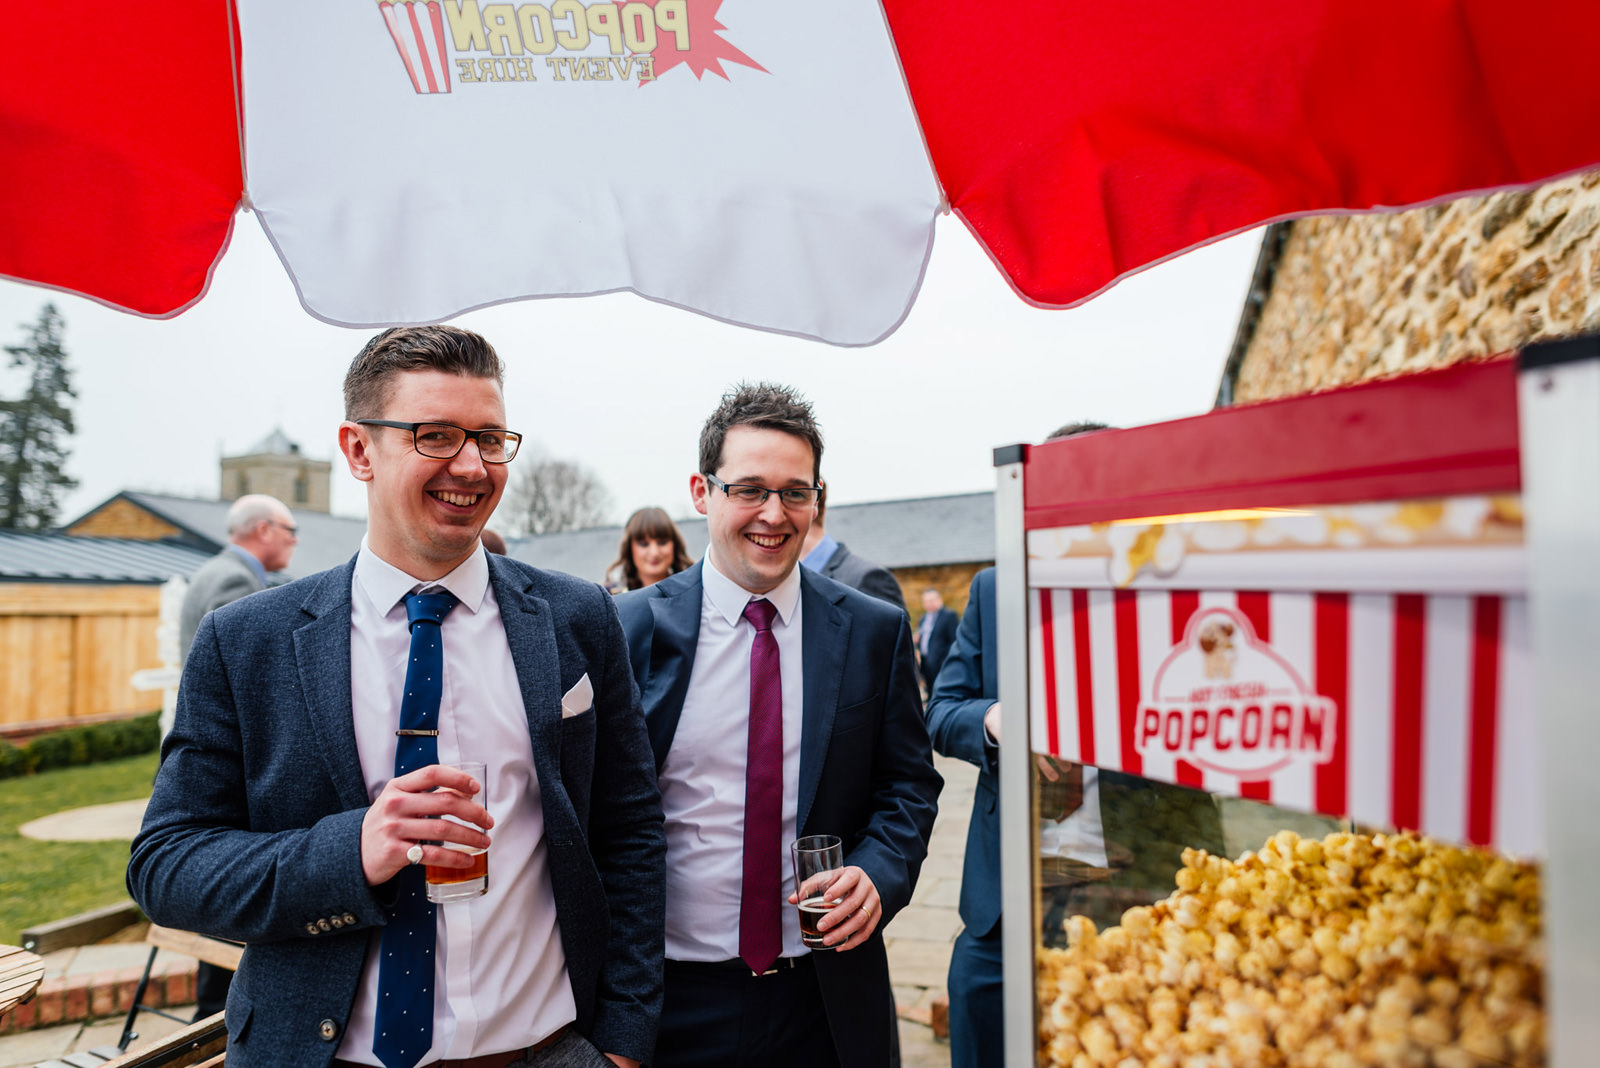 guests getting popcorn during drink reception